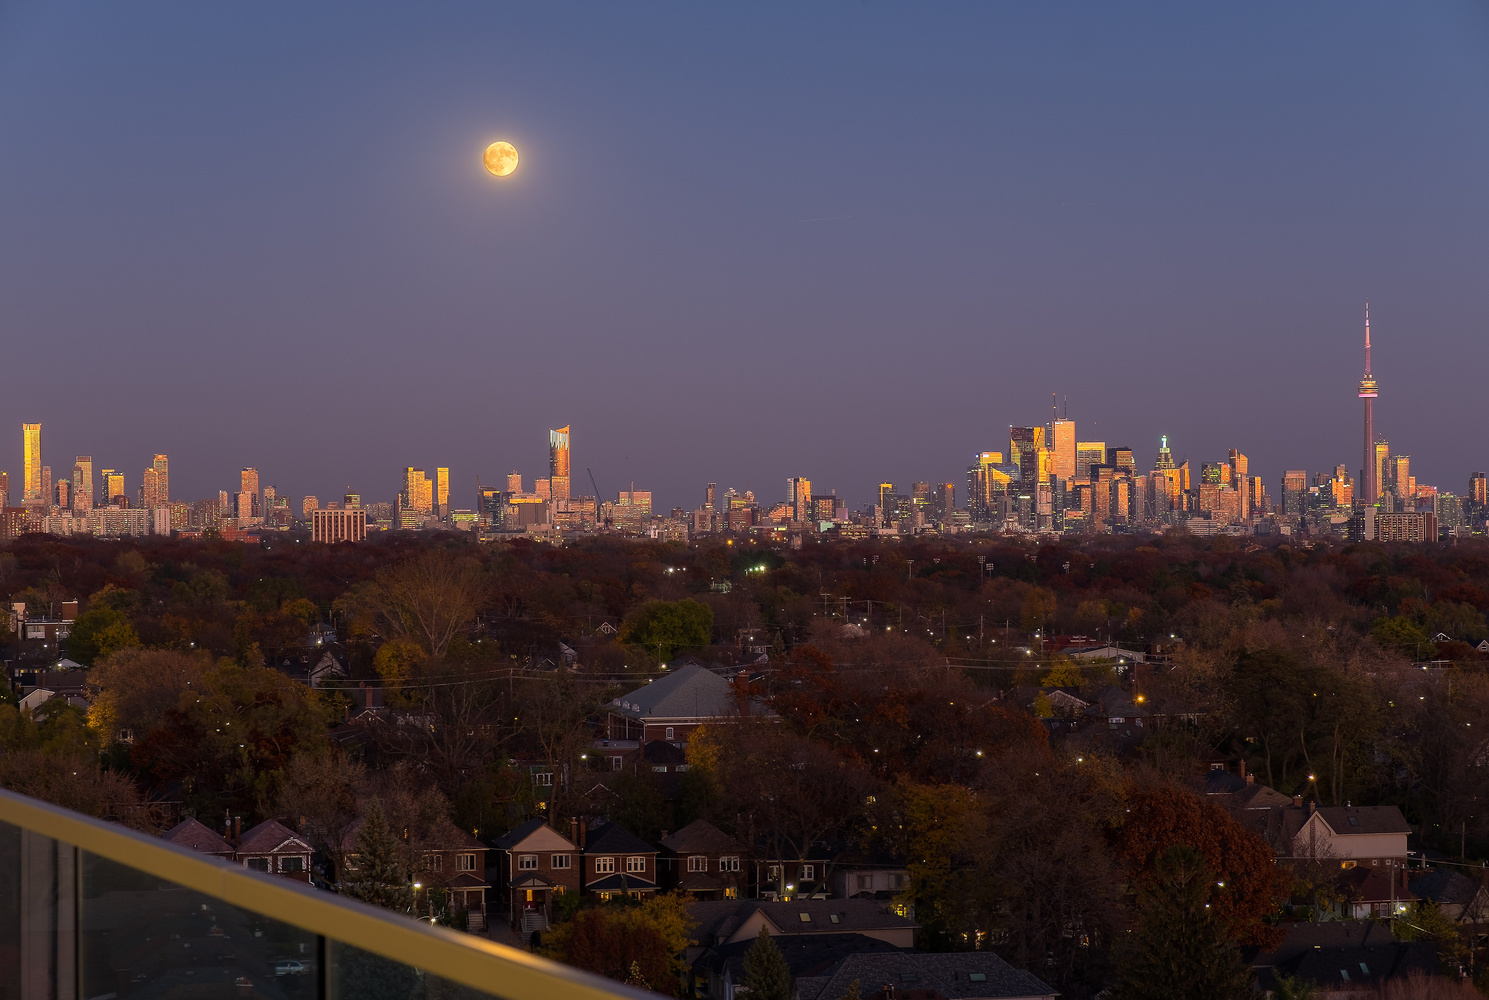 Toronto Supermoon by Mihnea Stoian